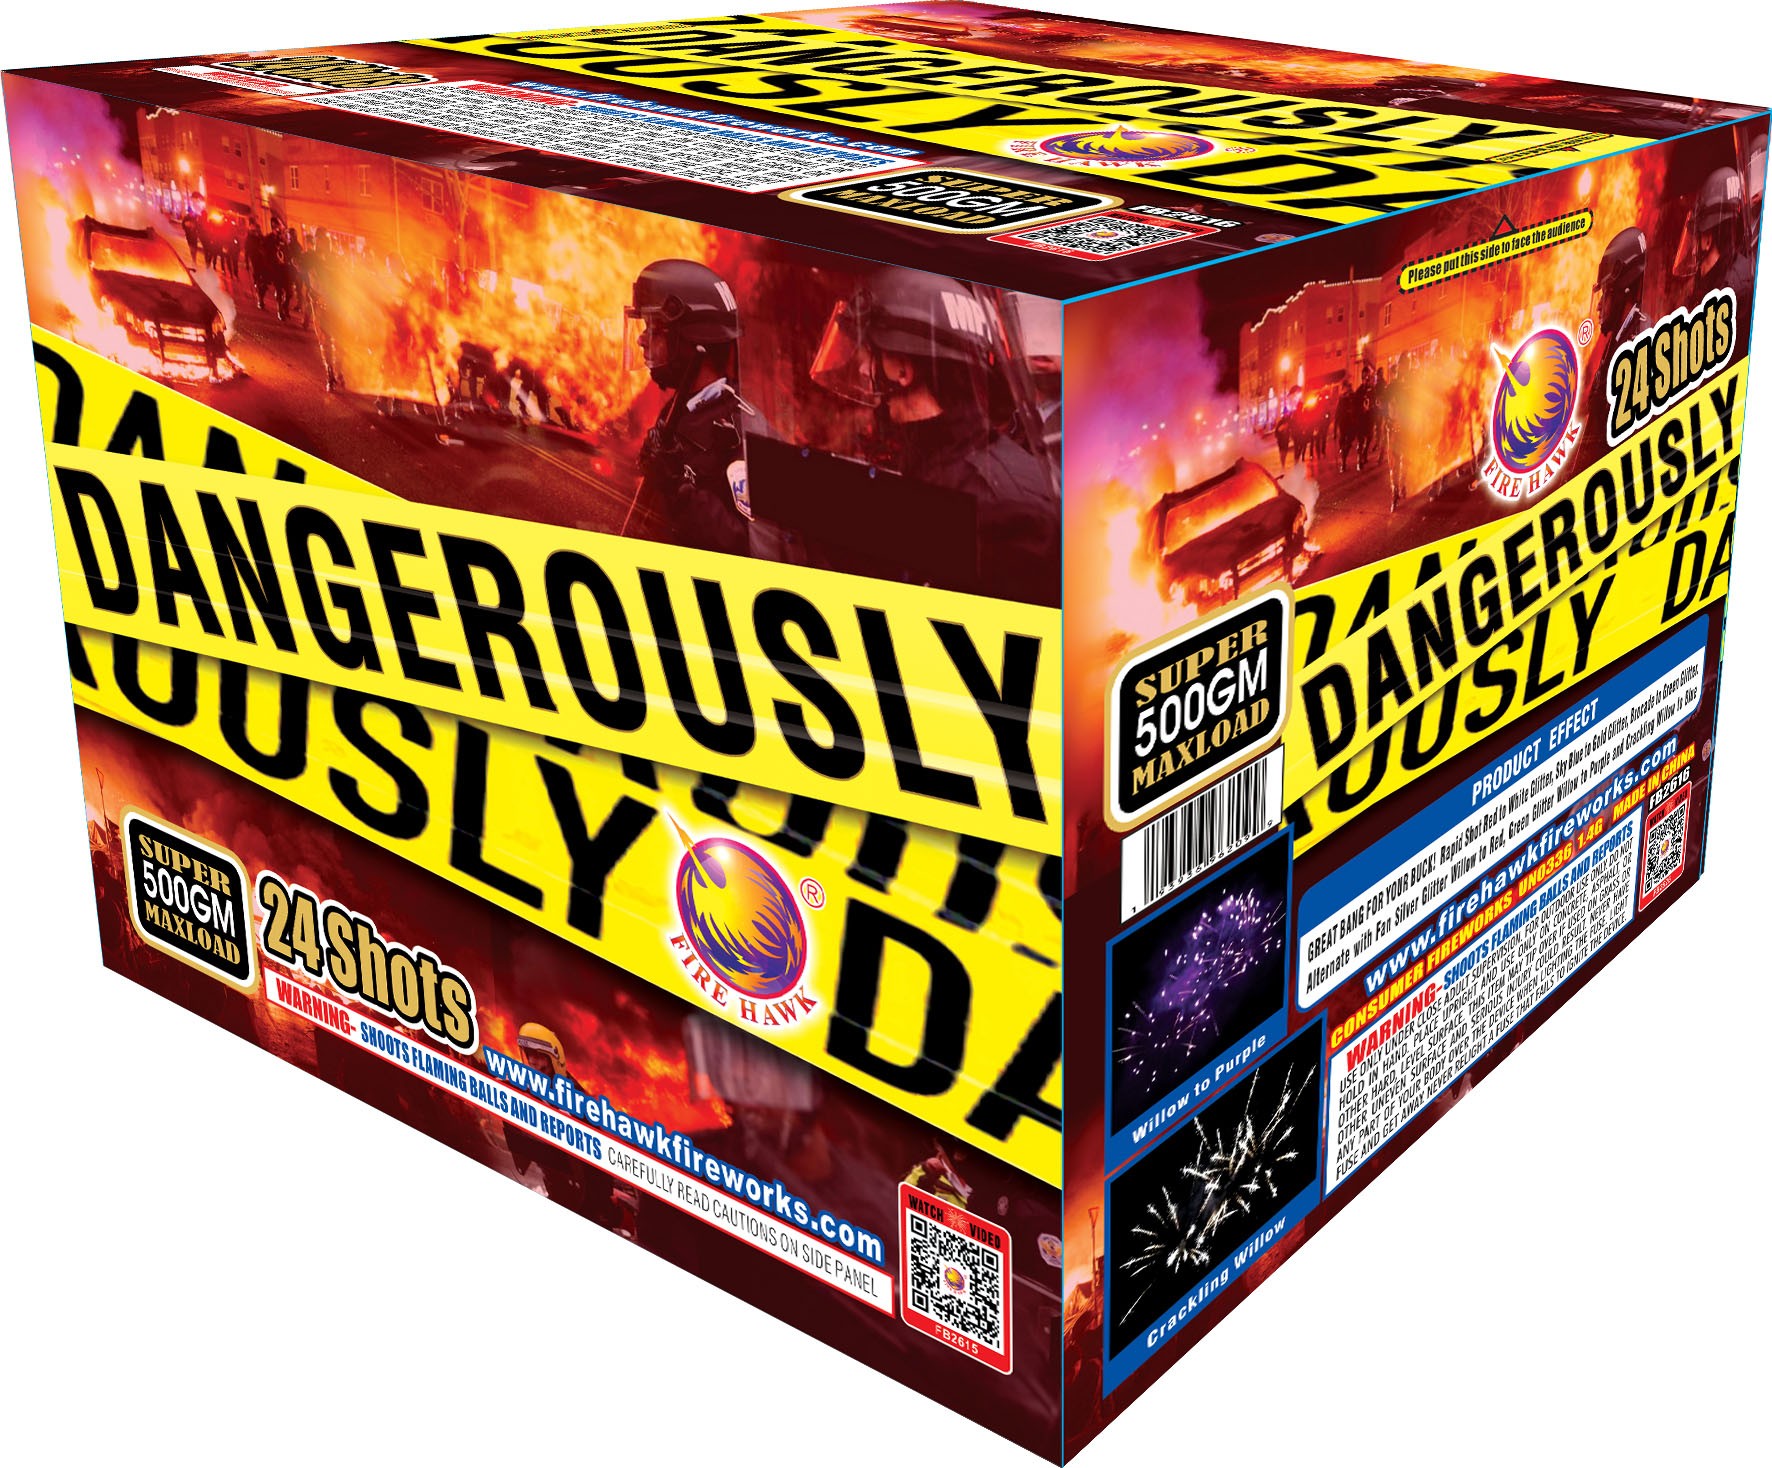 FB2616 Dangerously